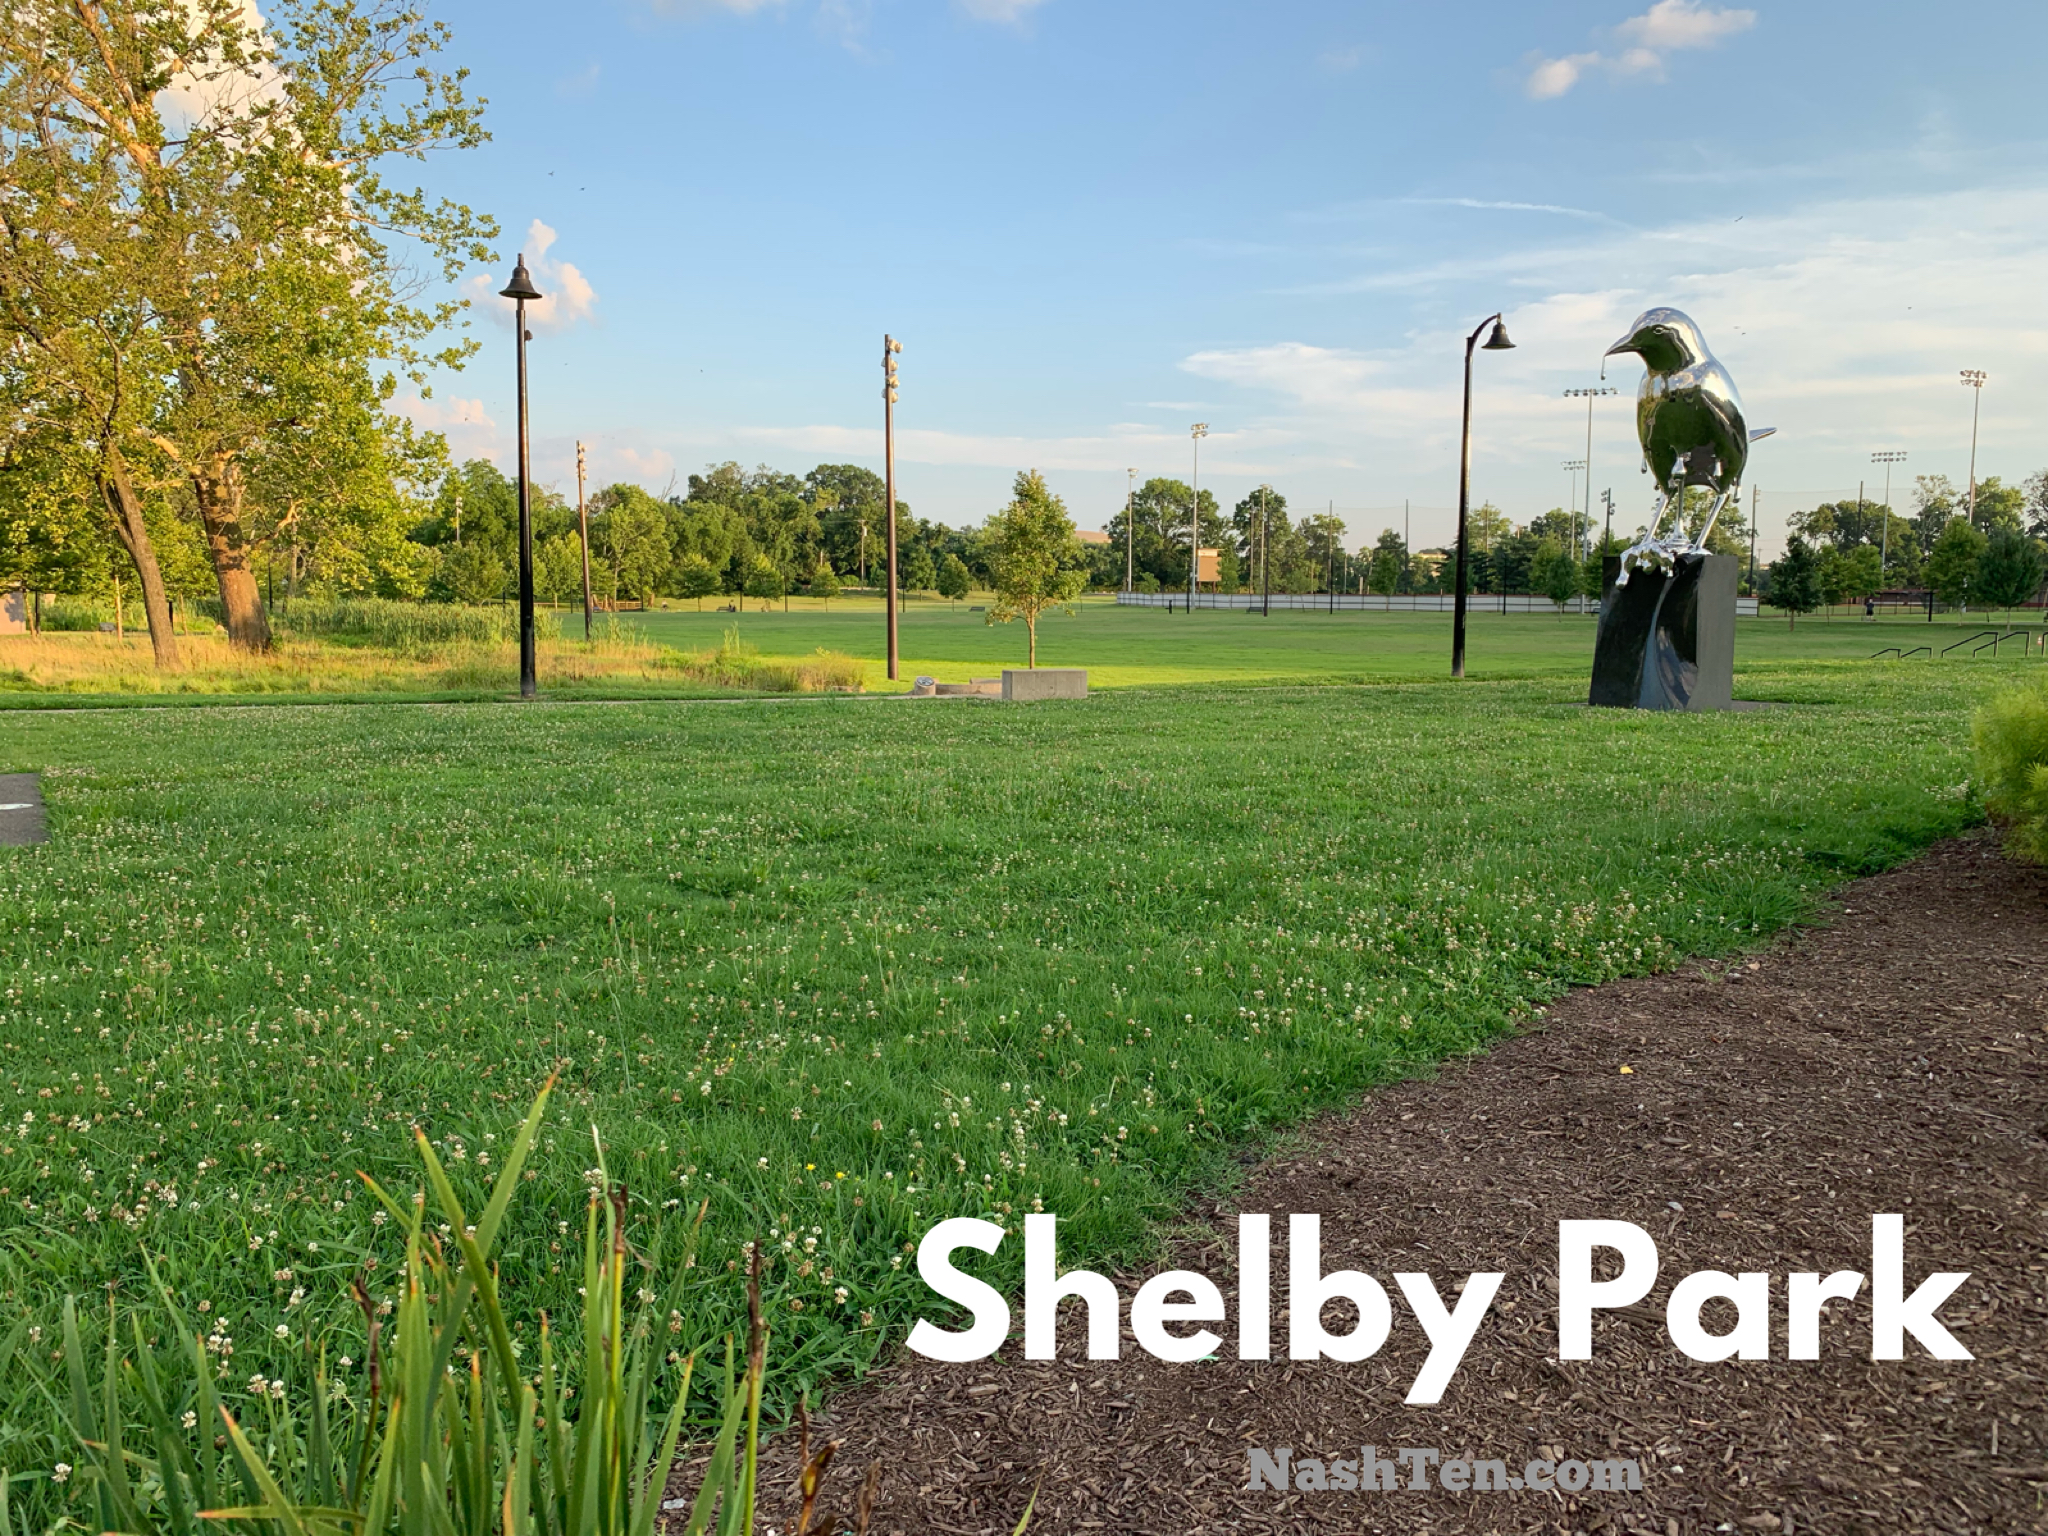 Shelby Park in East Nashville